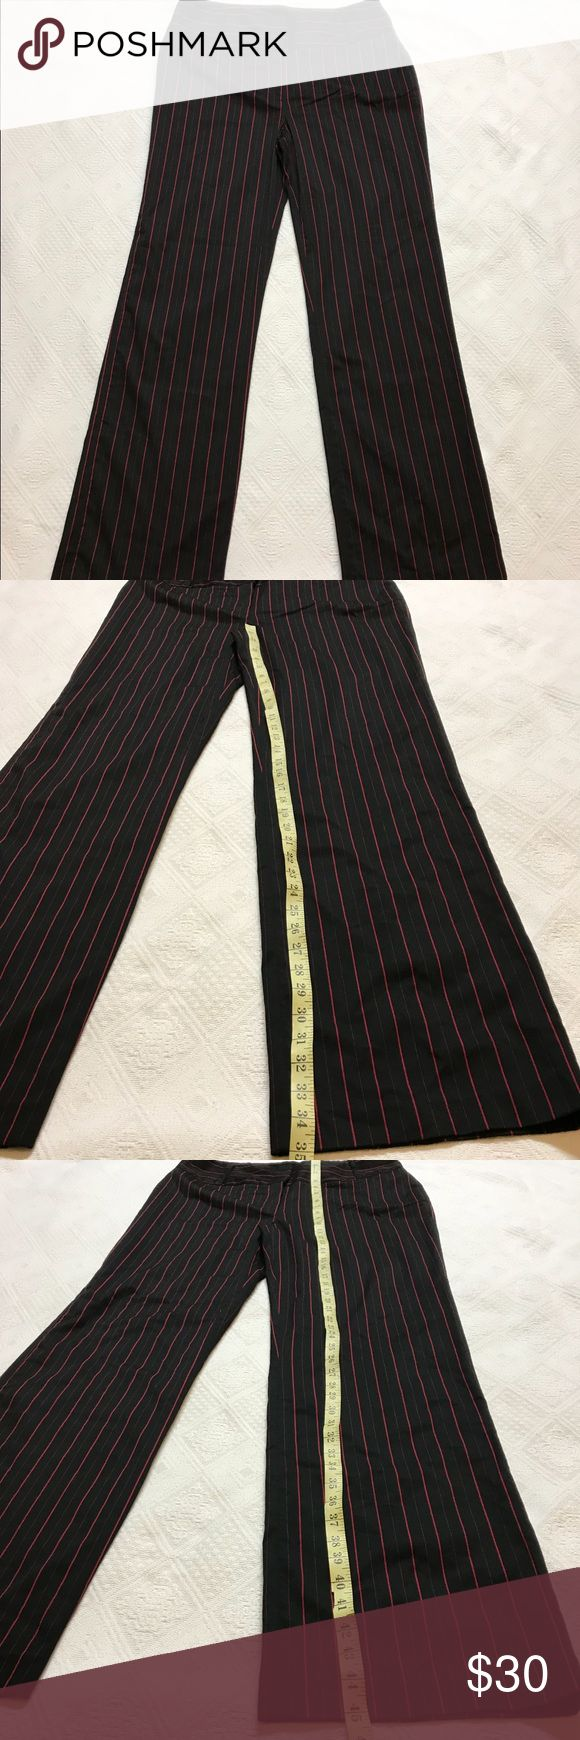 Metro style womens pants Black 16T 16 Tall Career Great red pinstripe on black pants. Size 16T 16 Tall. Flattering wide waist band. Brand new without tags. The extra button bag is attached but the price tag/sku is not. Metro Style Pants Wide Leg